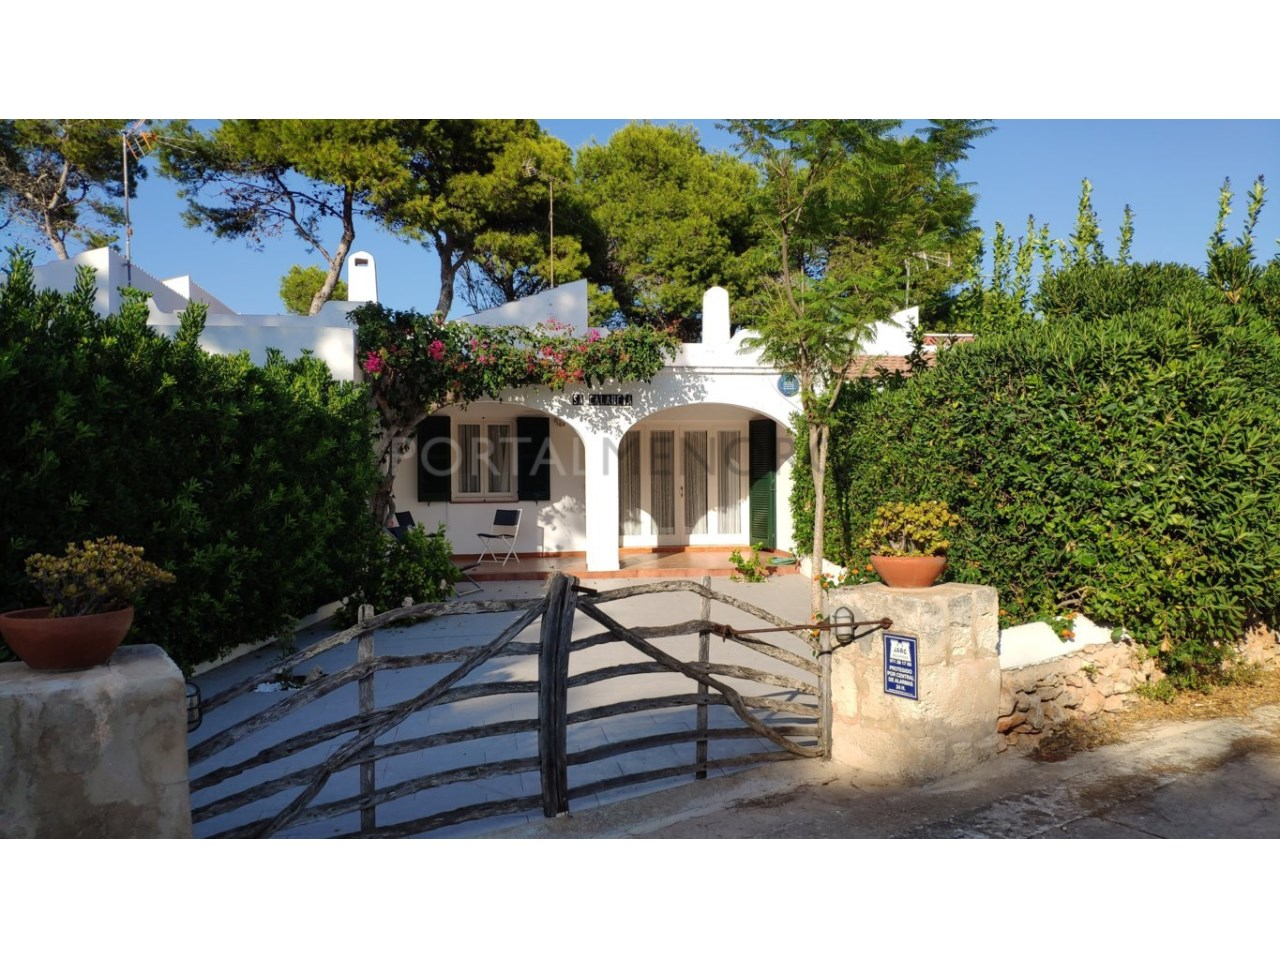 Townhouse for sale in Calan Blanes near the beach- facade